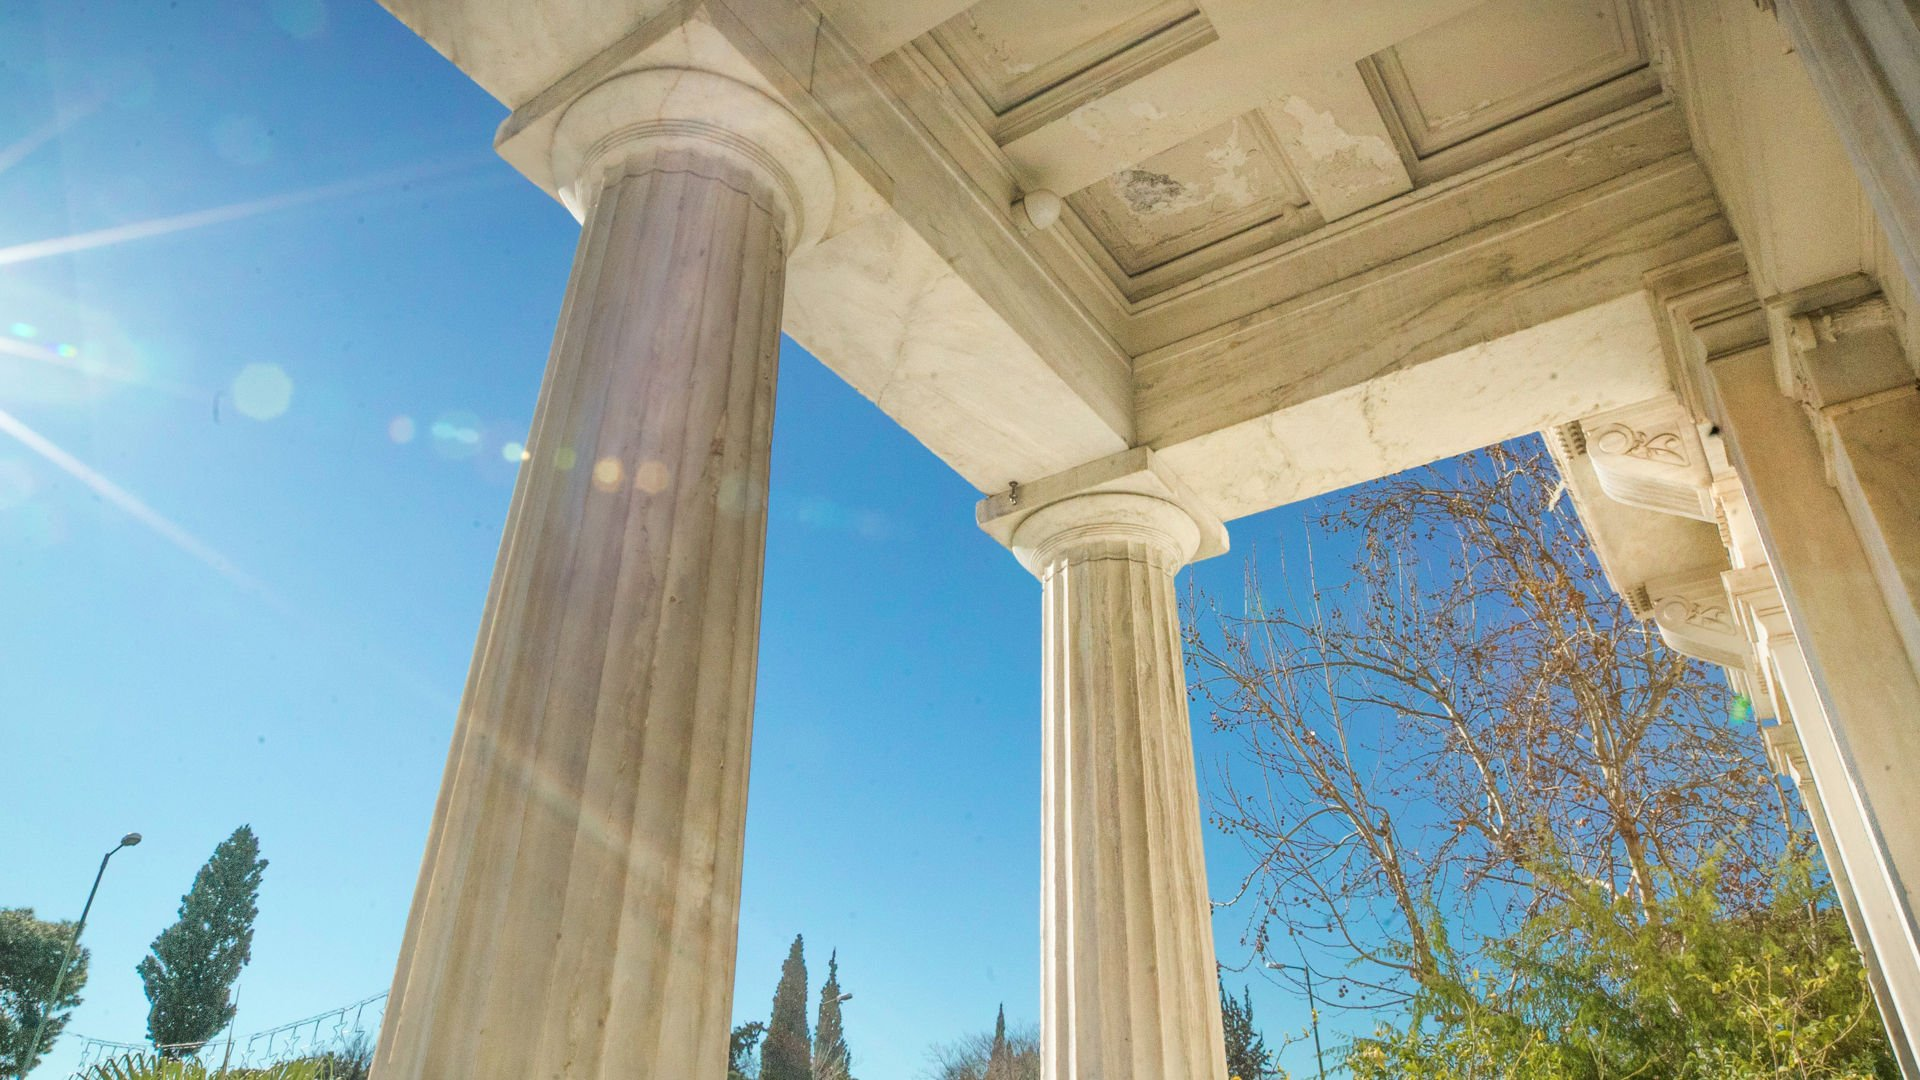 The magnificent columns of the Zappeion Megaron located in the National Gardens of Athens.